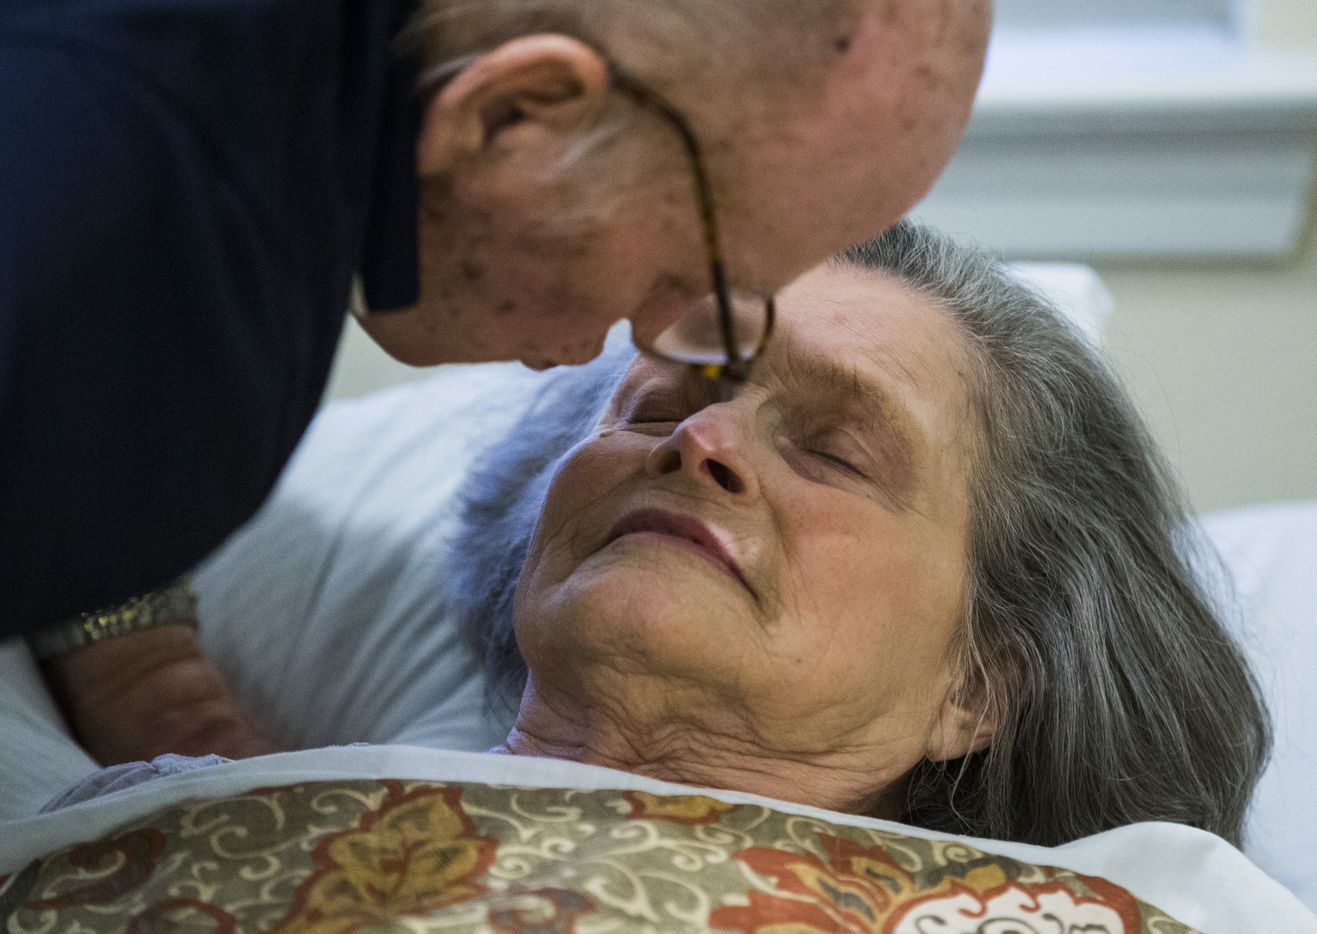 Bob Stiegler leans in to kiss his wife, Norma.